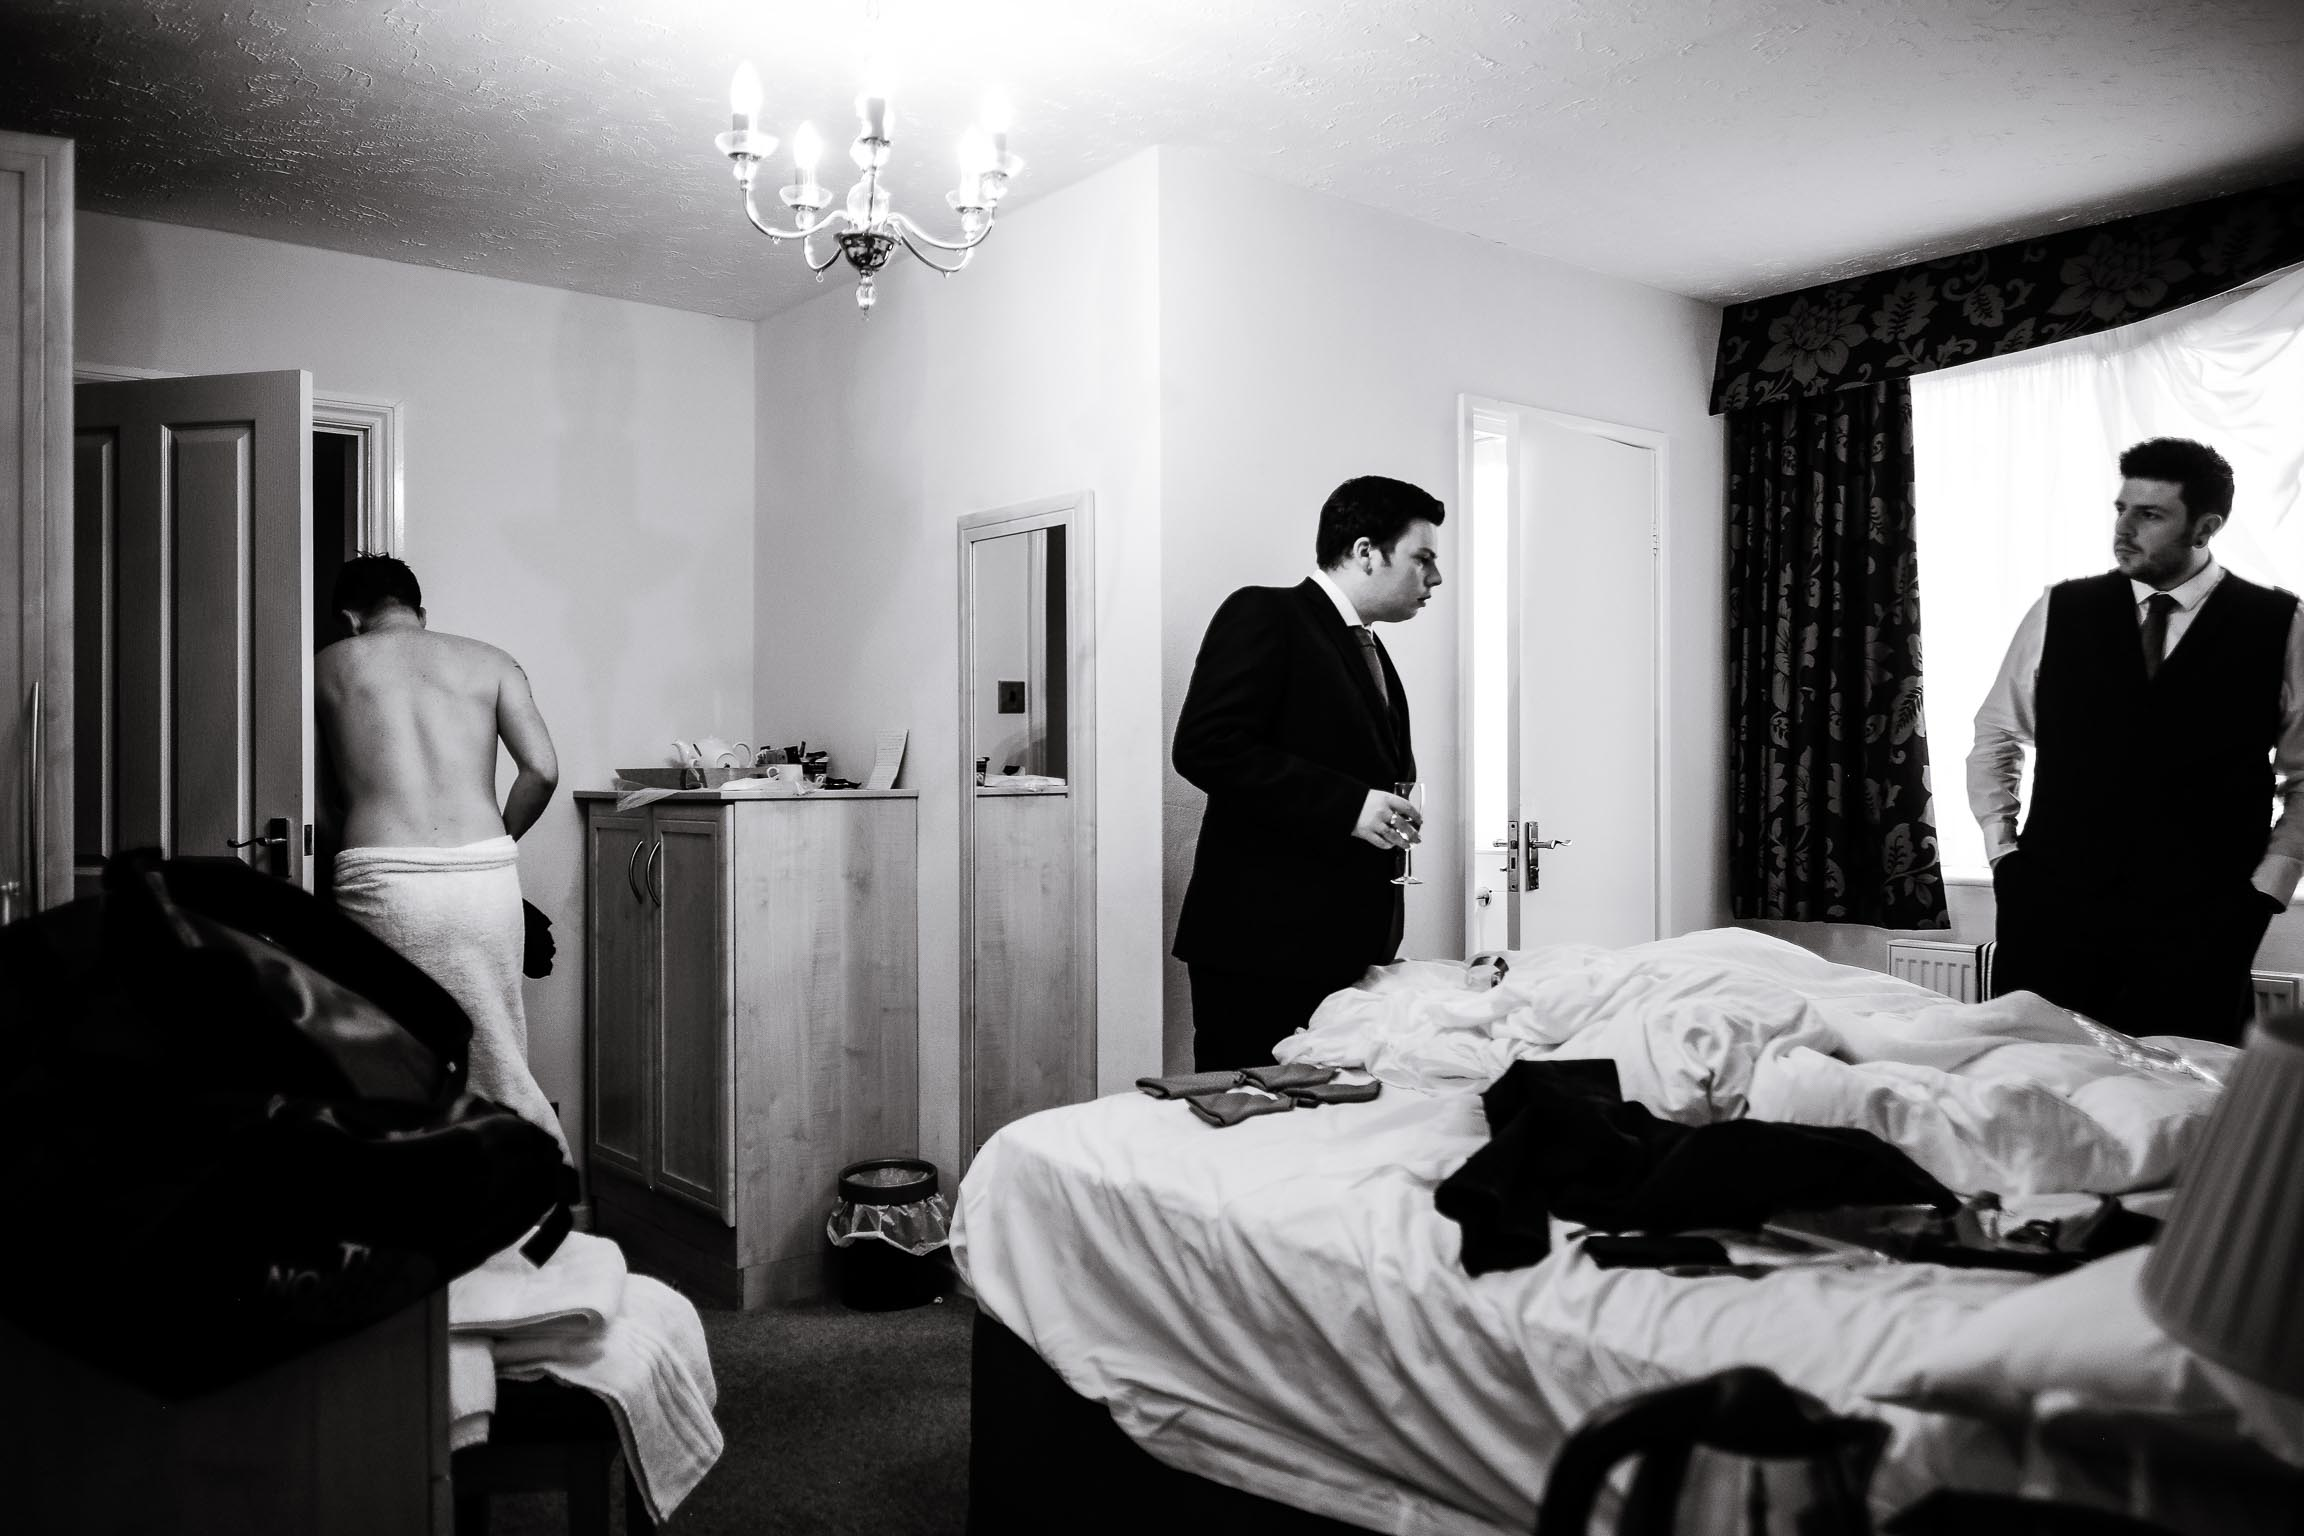 Stirk house clitheroe lancashire wedding photographer covering a documentary photography style  (15 of 85).jpg